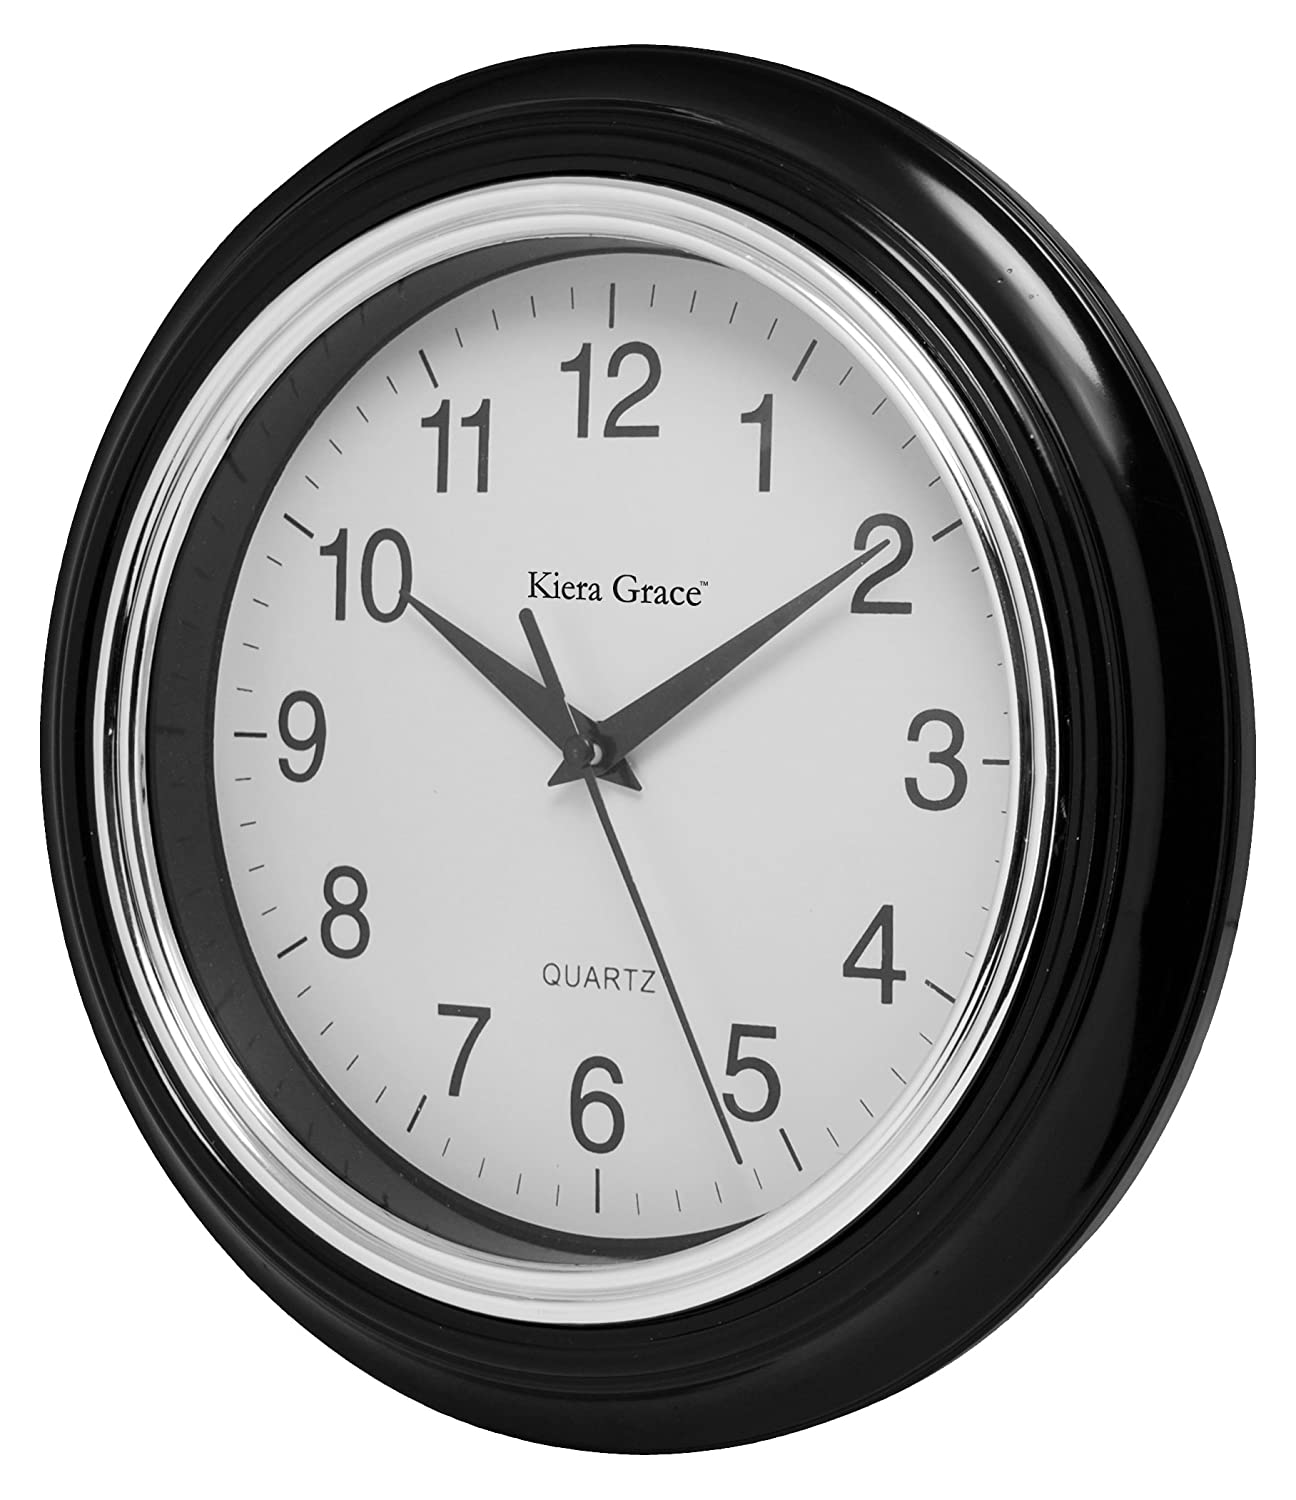 Amazon kiera grace aster round wall clock 10 inch 15 inch amazon kiera grace aster round wall clock 10 inch 15 inch deep black home kitchen amipublicfo Image collections